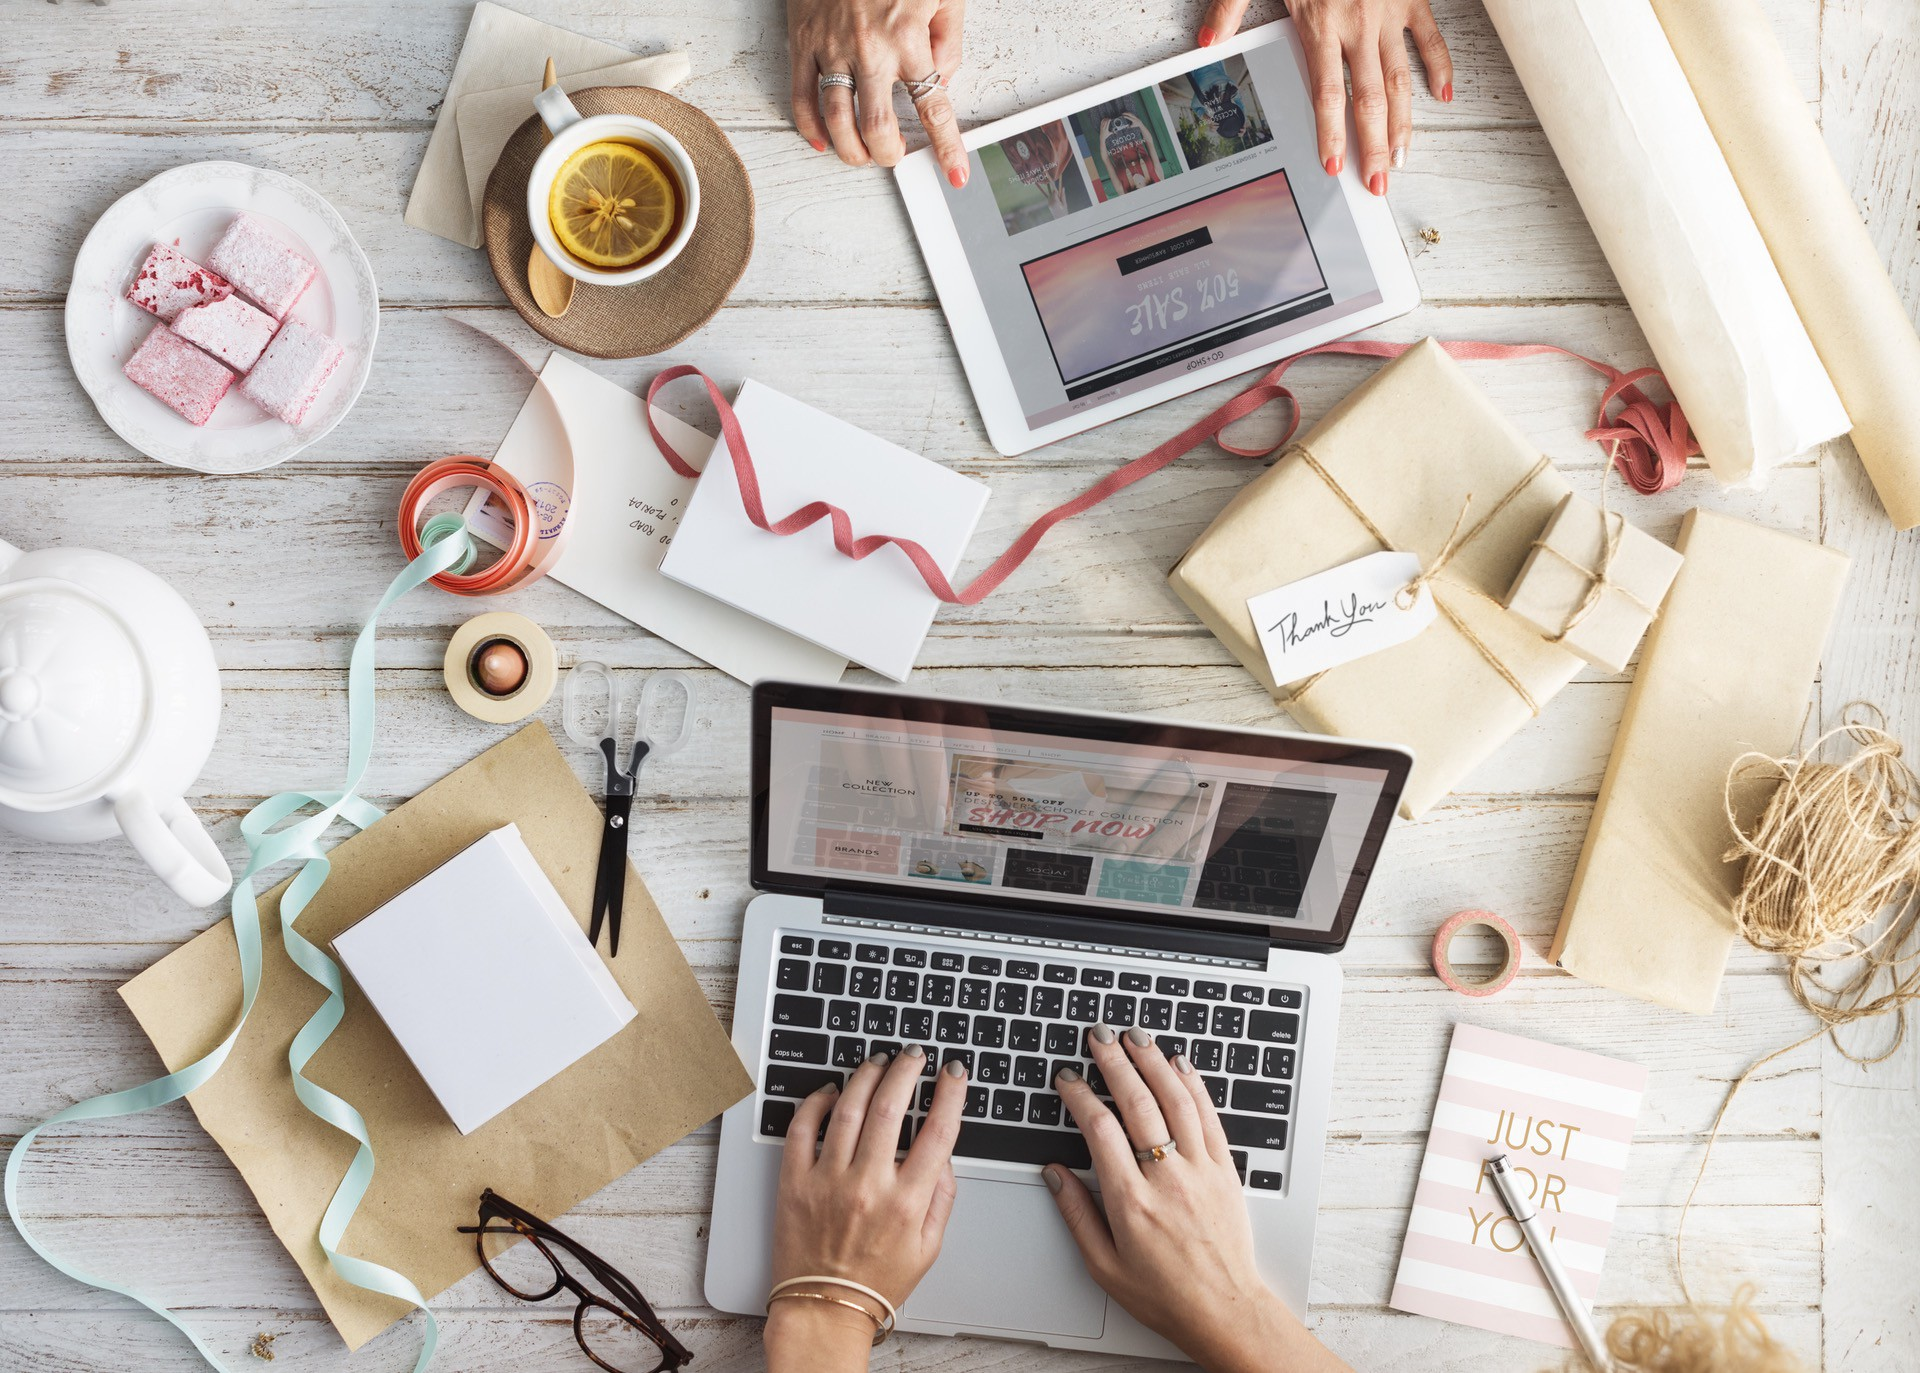 5 tips and tools that will inspire you to become more productive